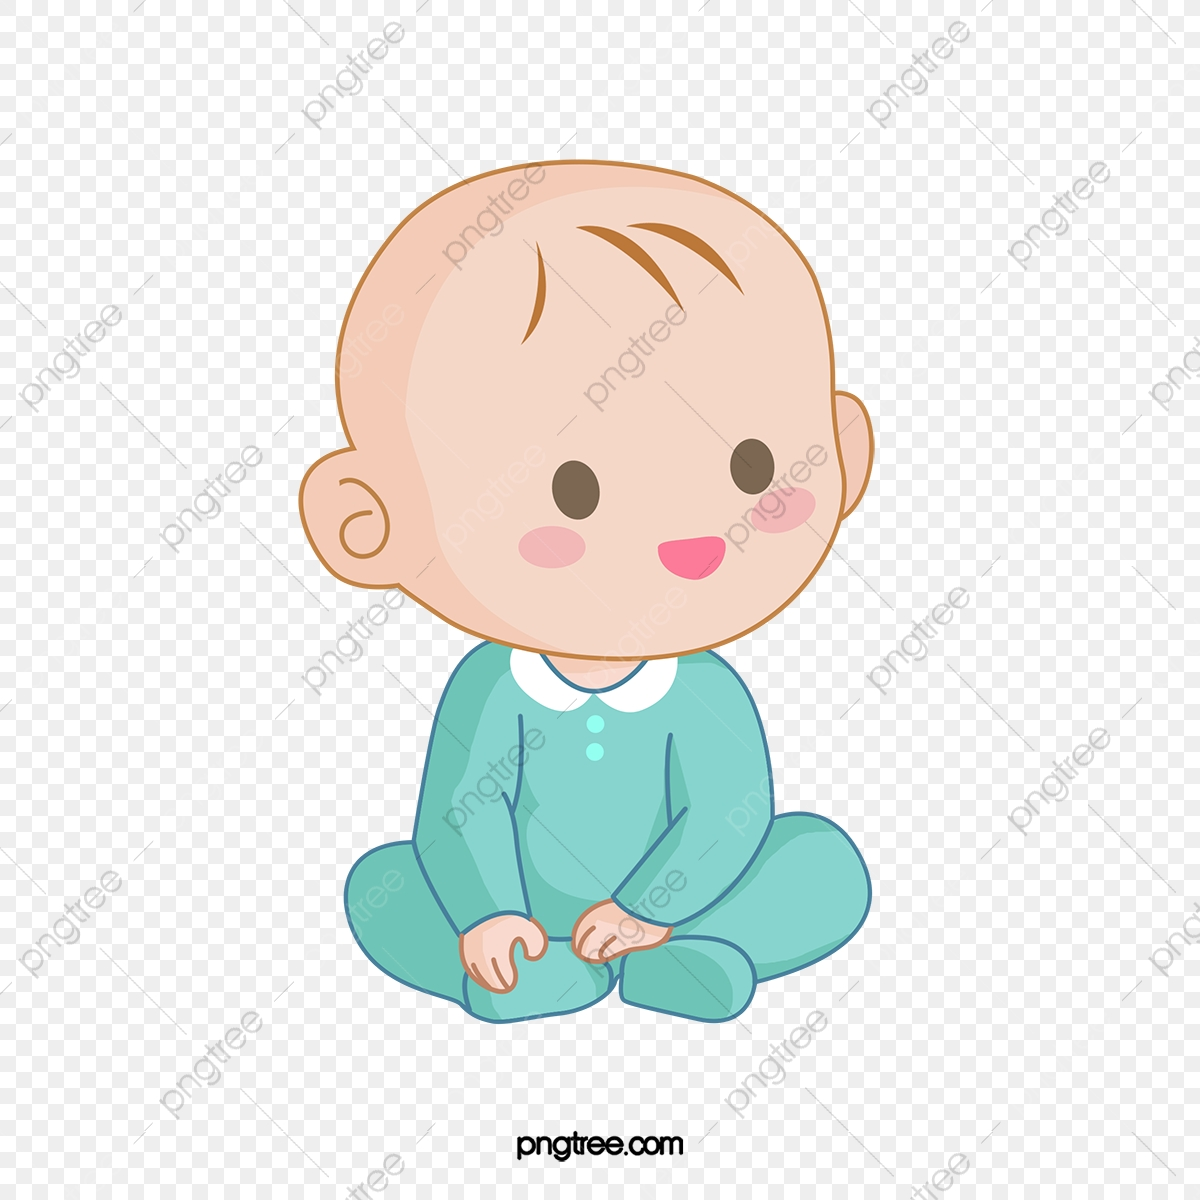 Baby Png Images Vector And Psd Files Free Download On Pngtree